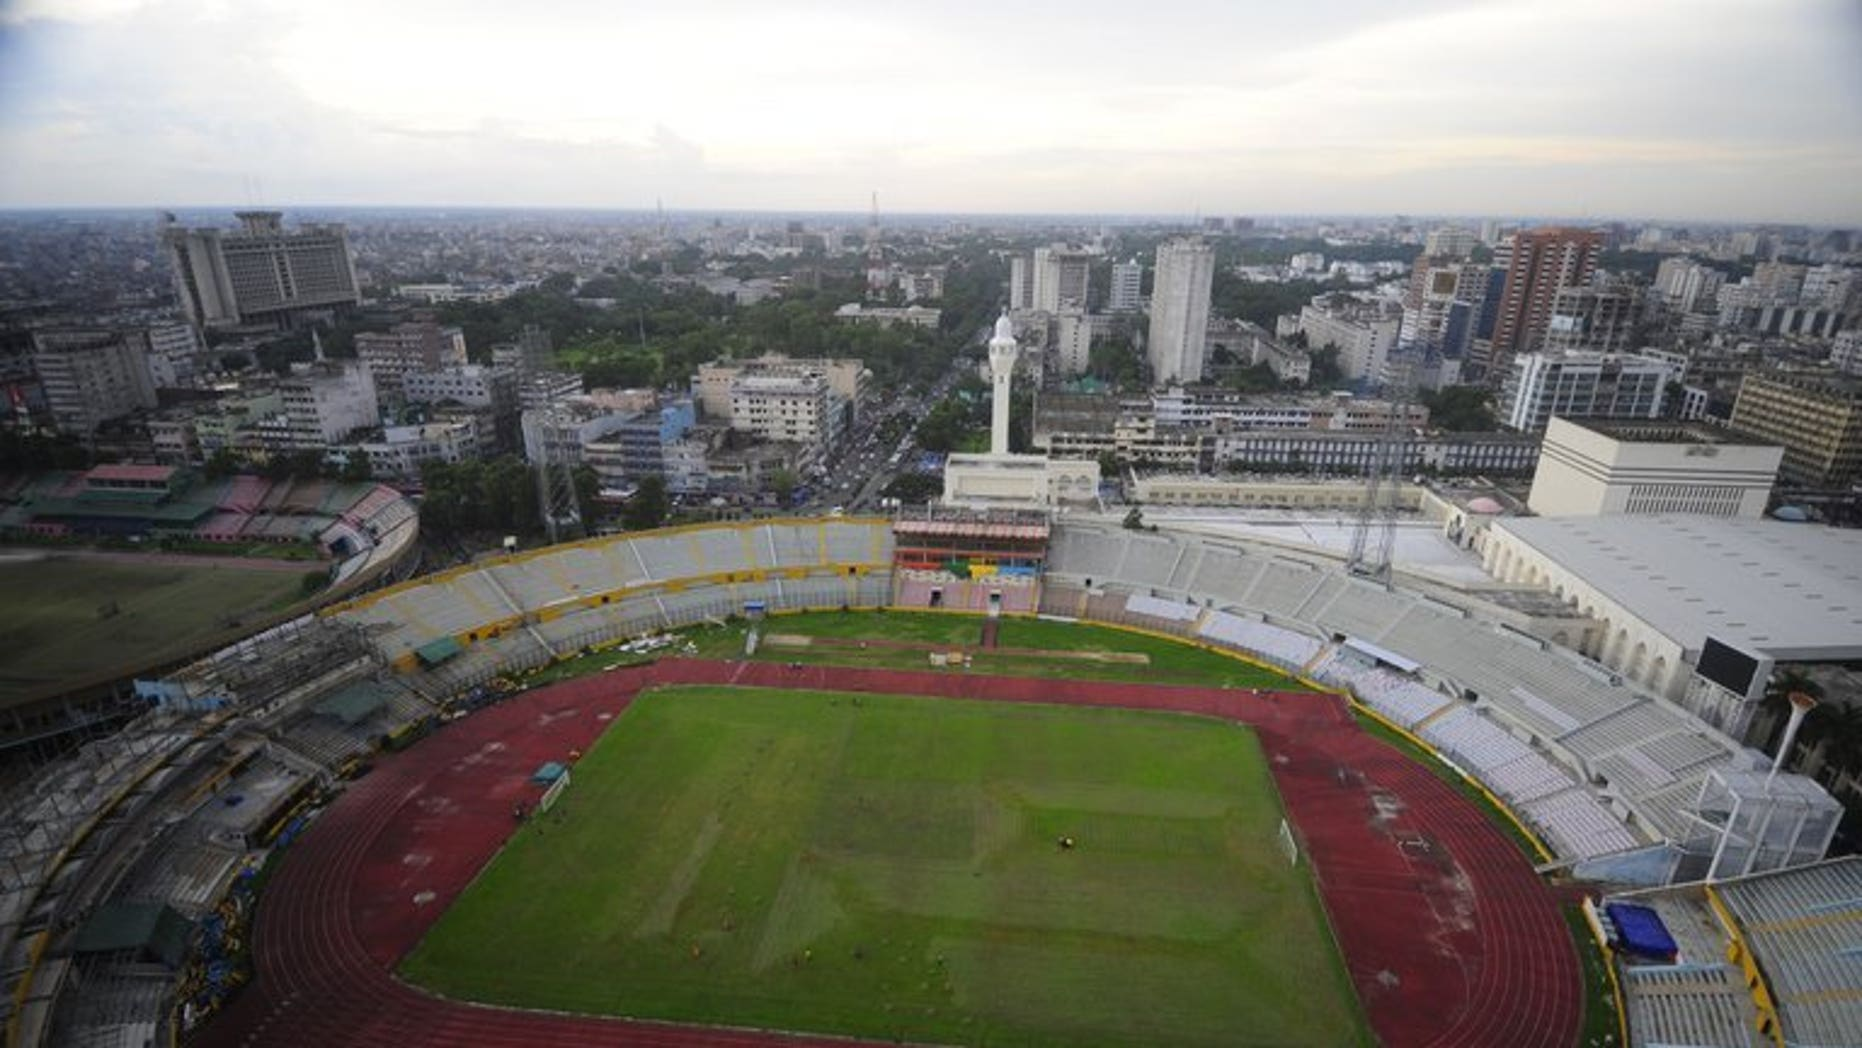 A general view of the Bangabandhu National Stadium in the Banladeshi capital Dhaka on September 20, 2010. The International Cricket Council (ICC) said Tuesday seven people have been charged over matching-fixing in the Bangladesh Premier League and another two were charged for failing to report corruption in the game.